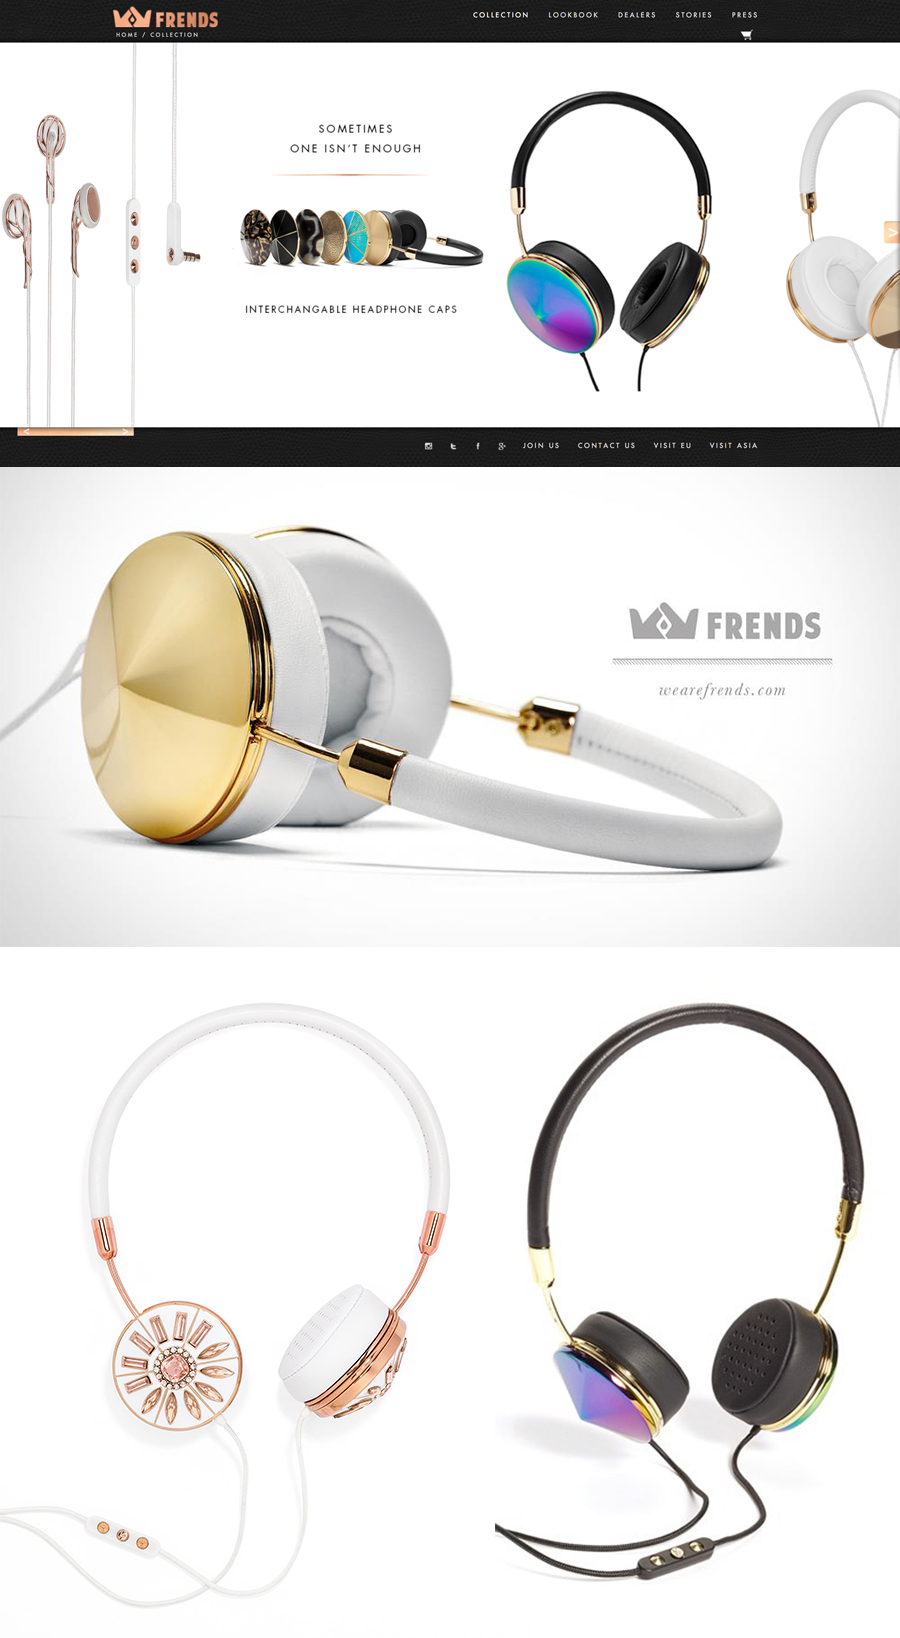 We are FRENDS - makers of the most awesome headphones EVER